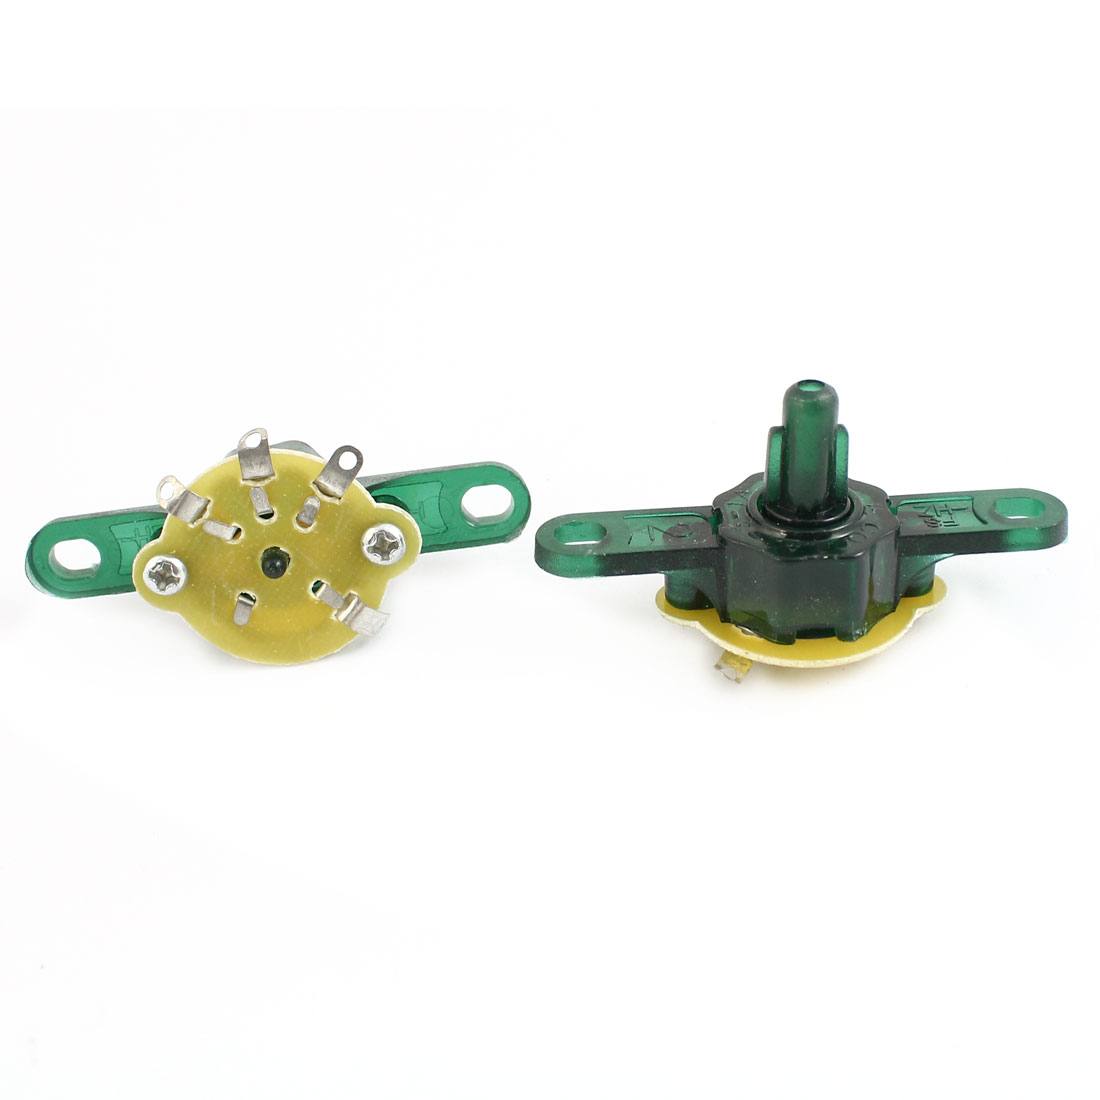 AC 250V 1A 3-Way Electric Fan Fitting Speed Control Switch 2 Pcs